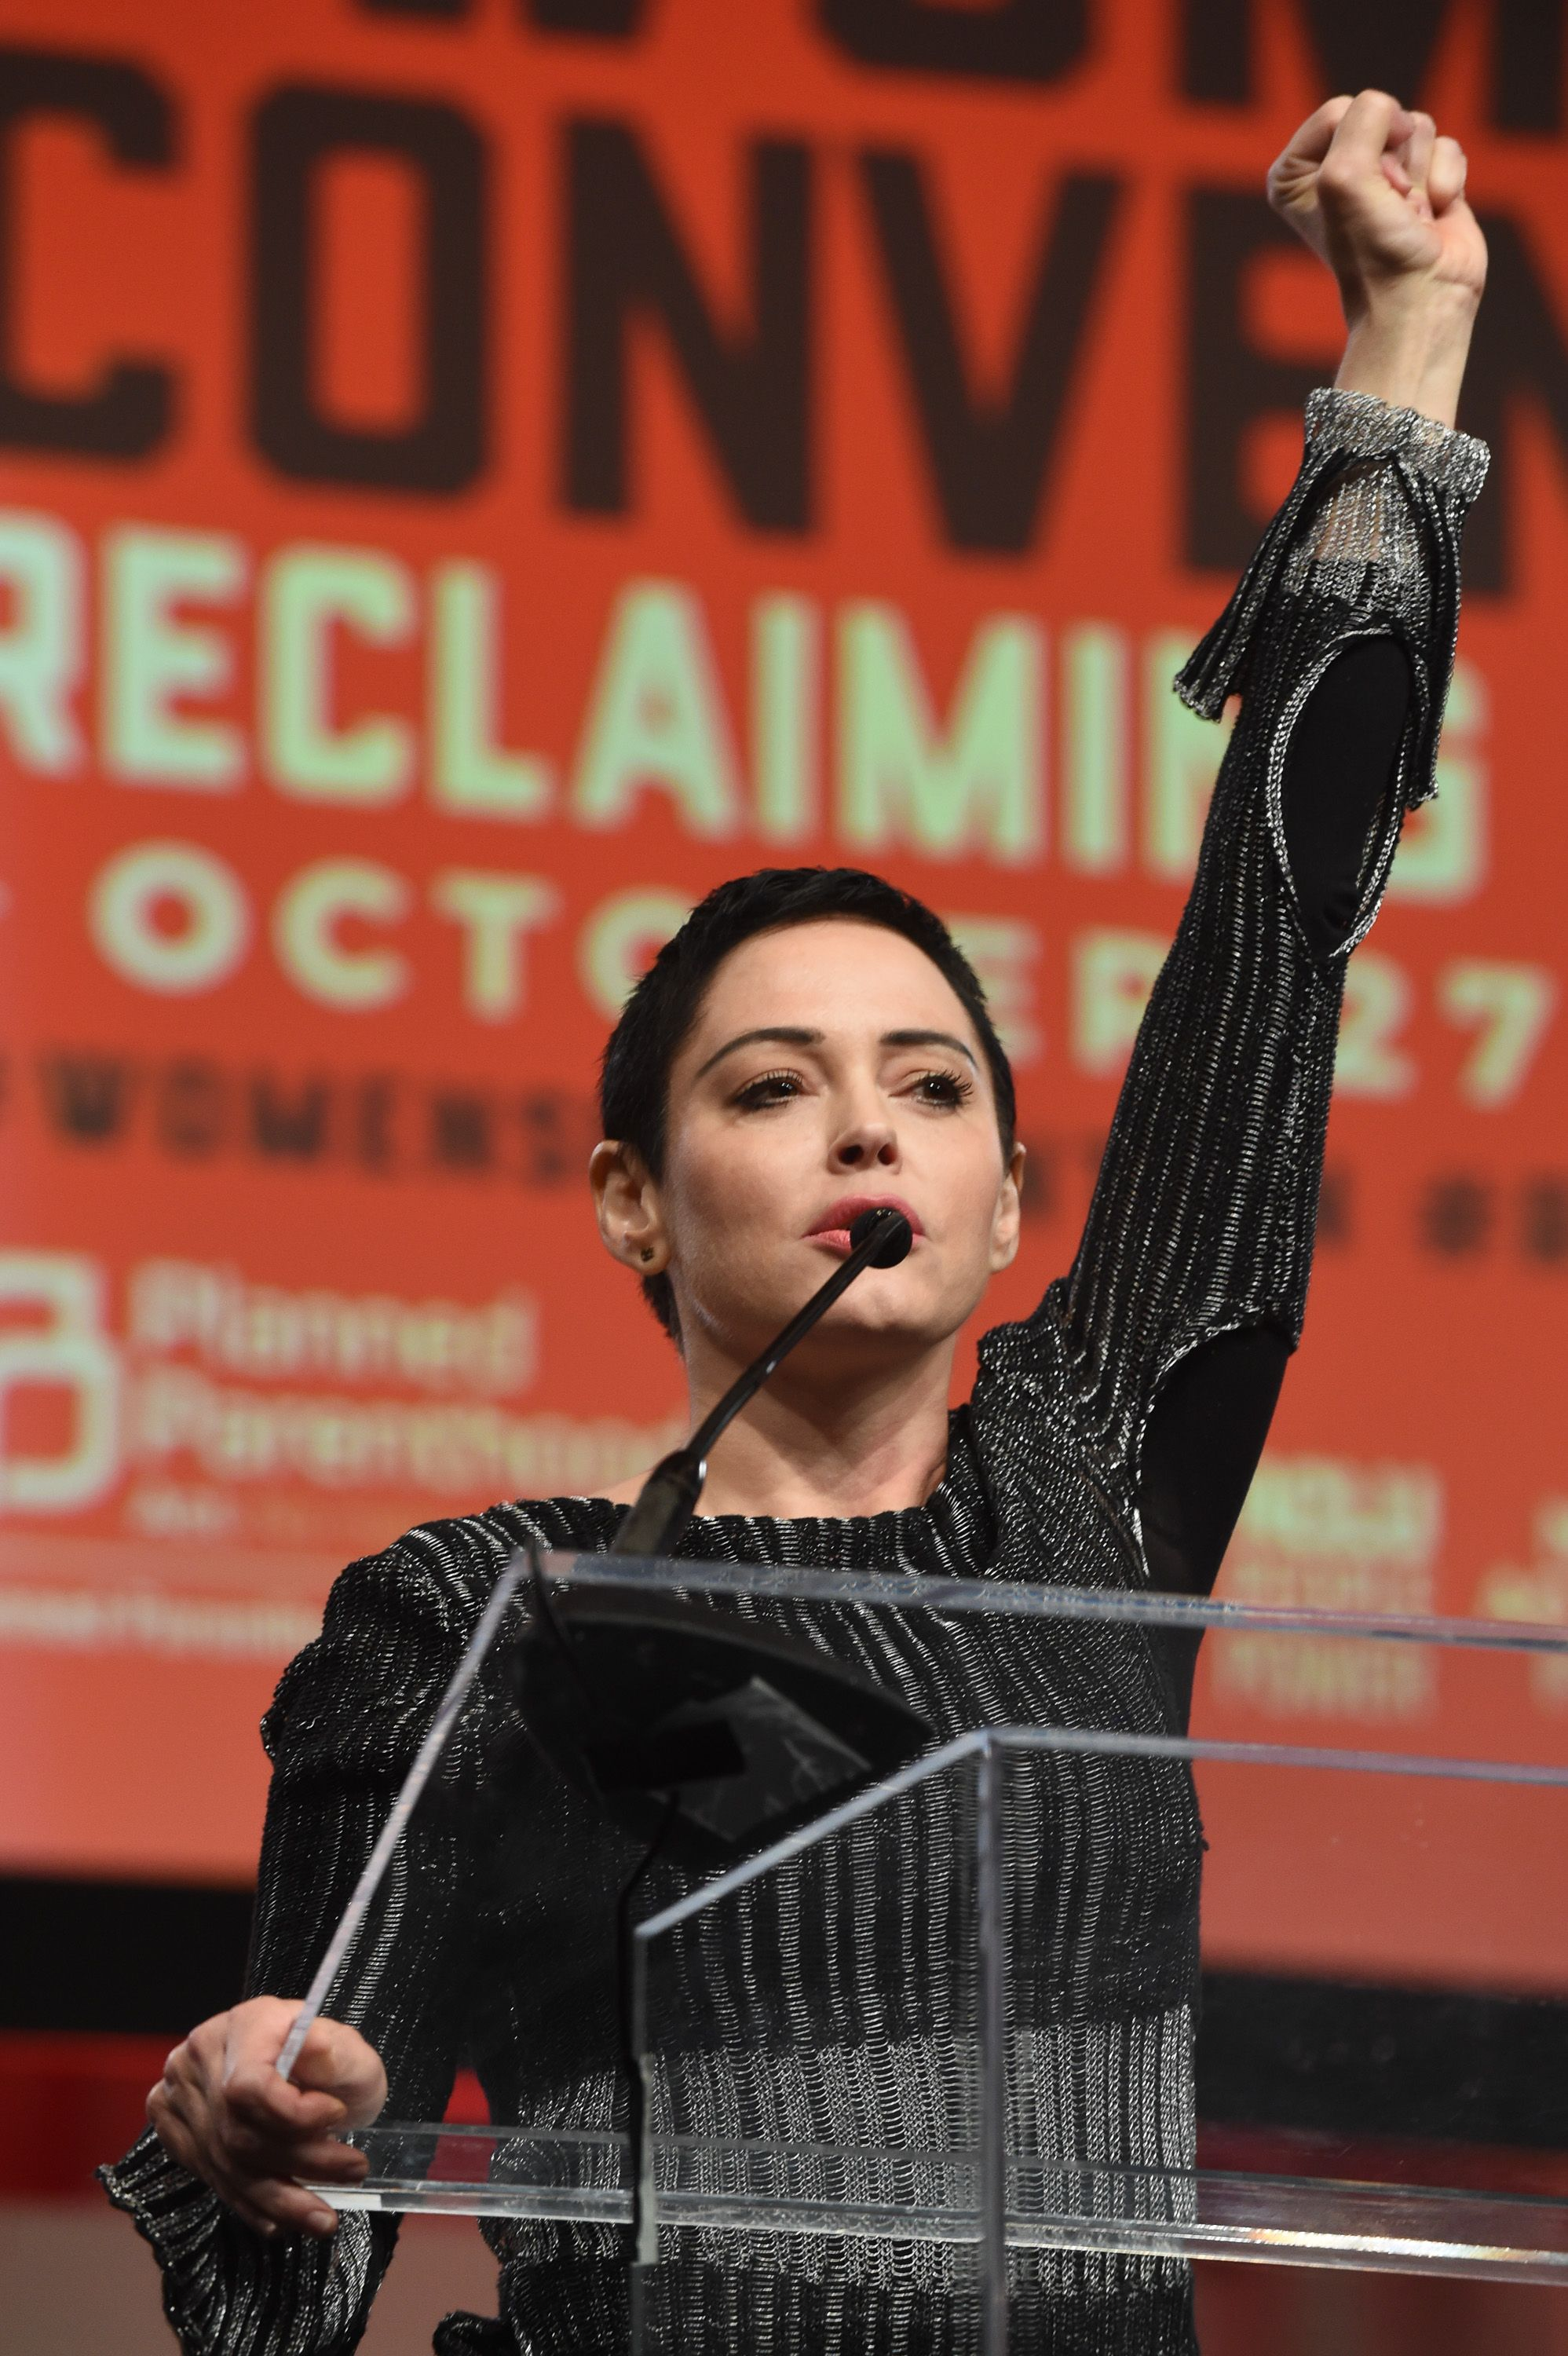 Rose McGowan speaking at The Women's Convention in October 2017 in Detroit, Michigan | Source: Getty Images